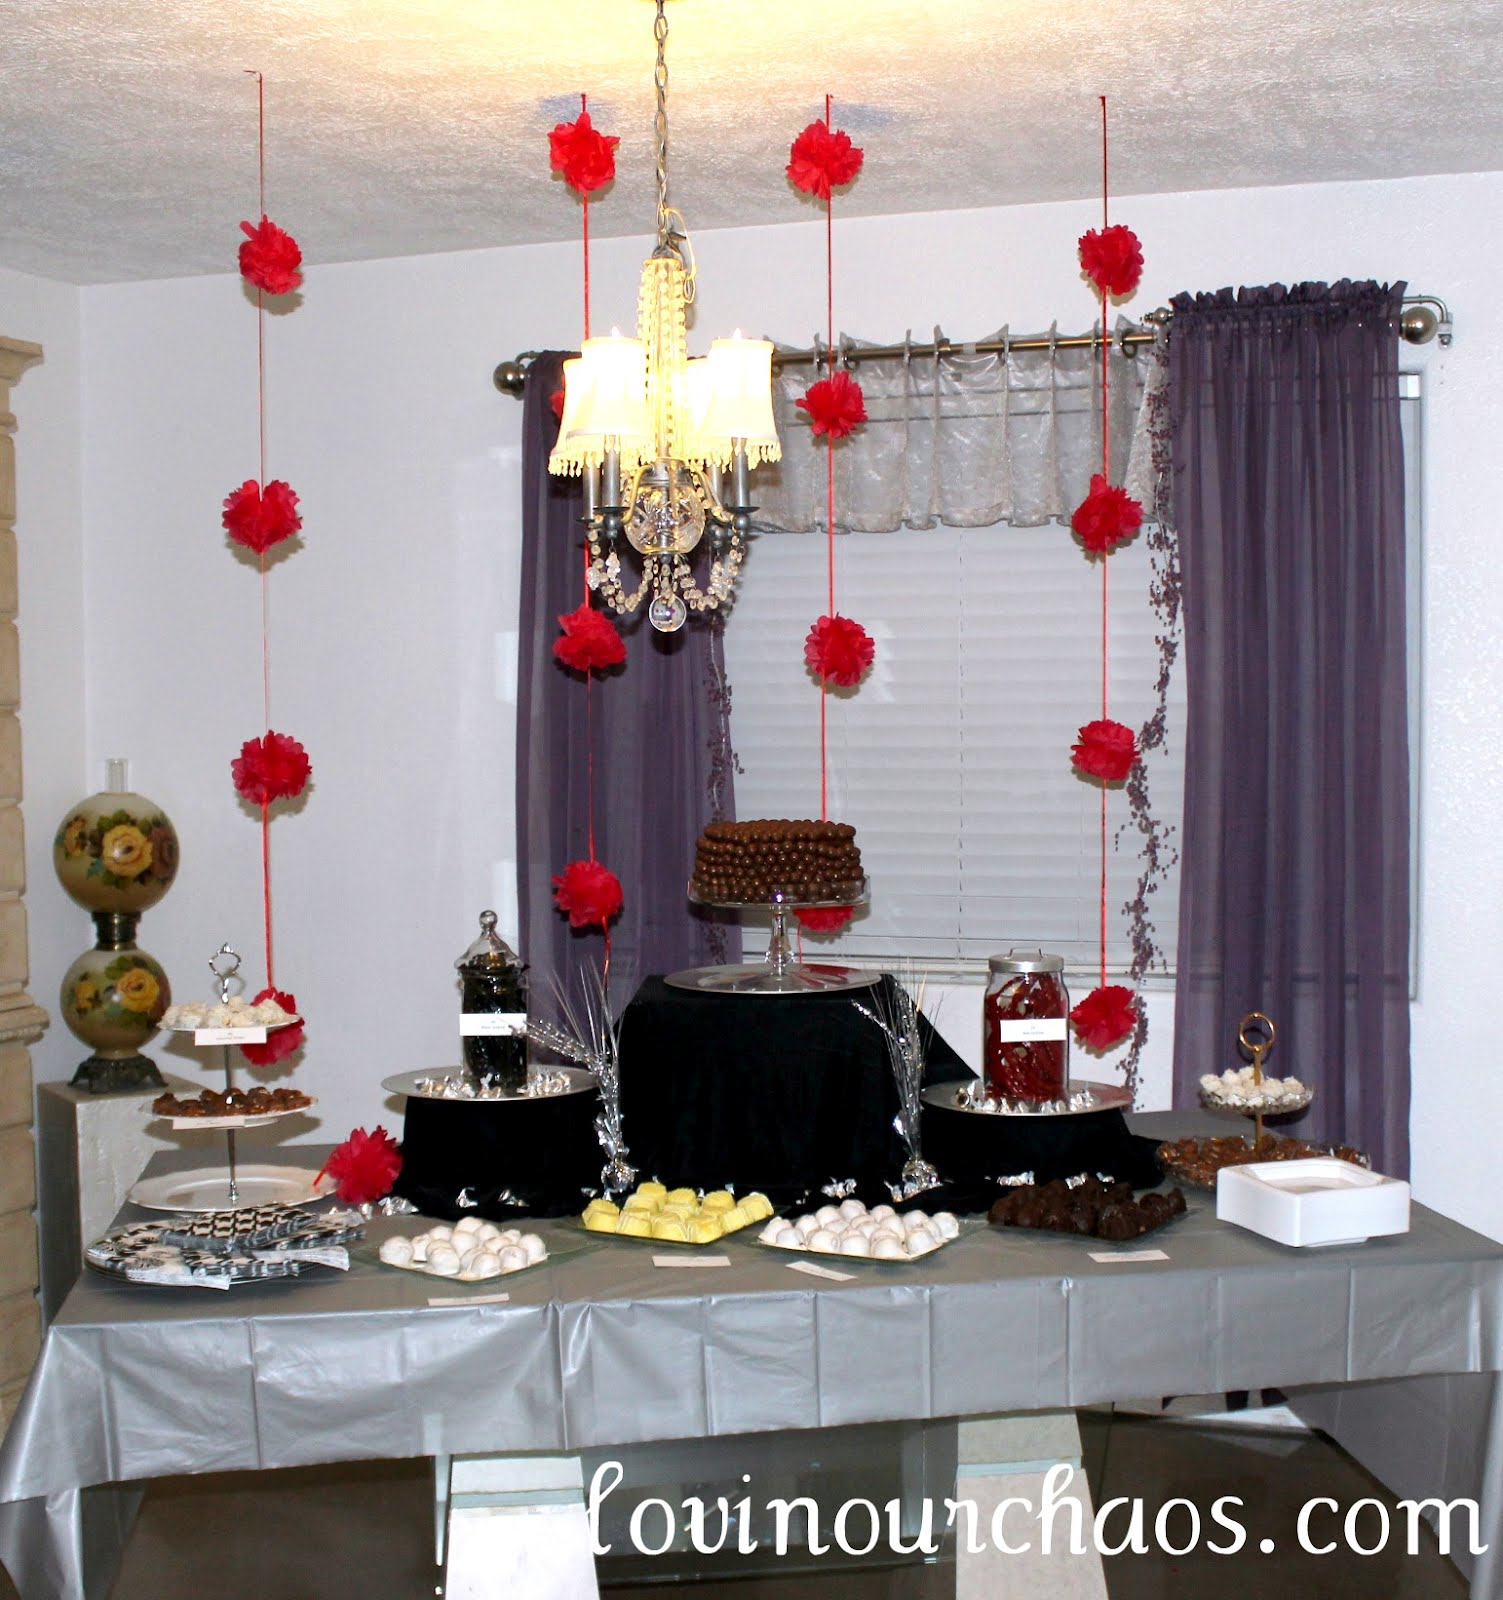 65th birthday party decorations pictures to pin on